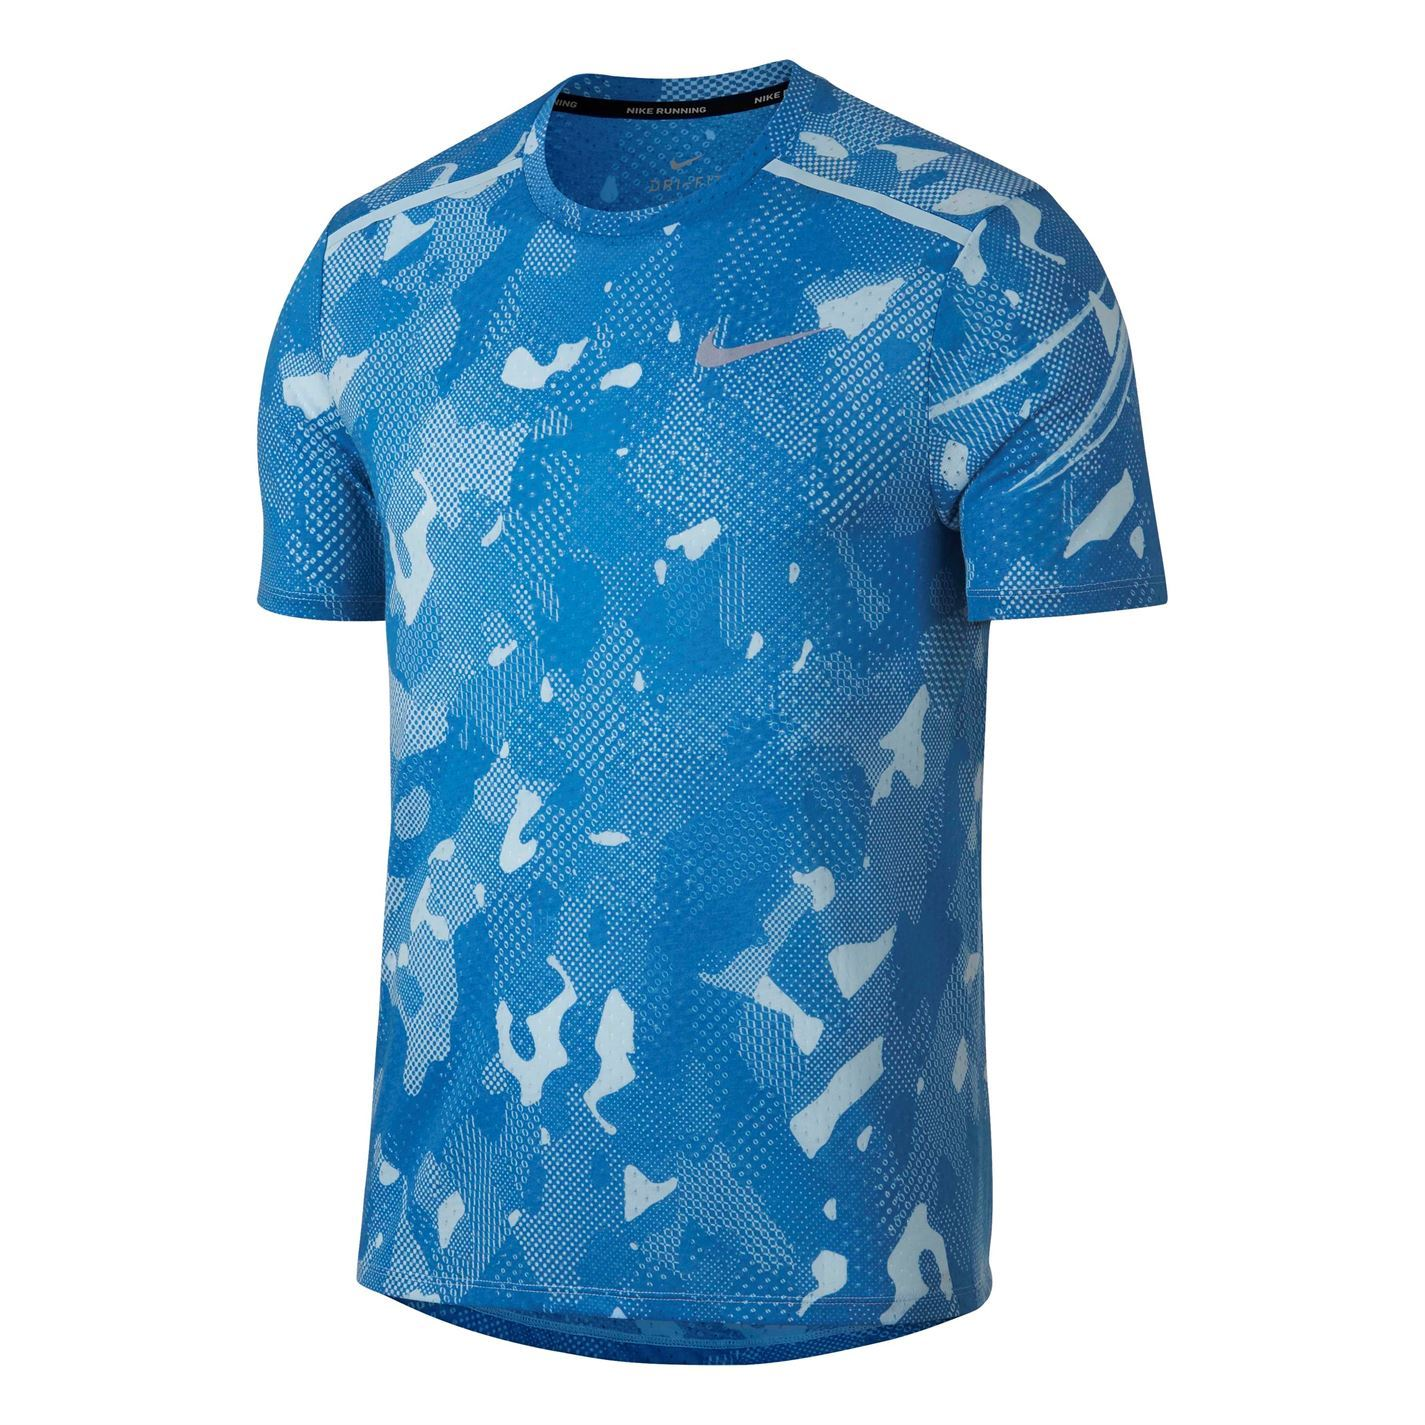 50a54b77 Nike Tailwind Camouflage Running Top Mens Jogging Fitness Workout T ...